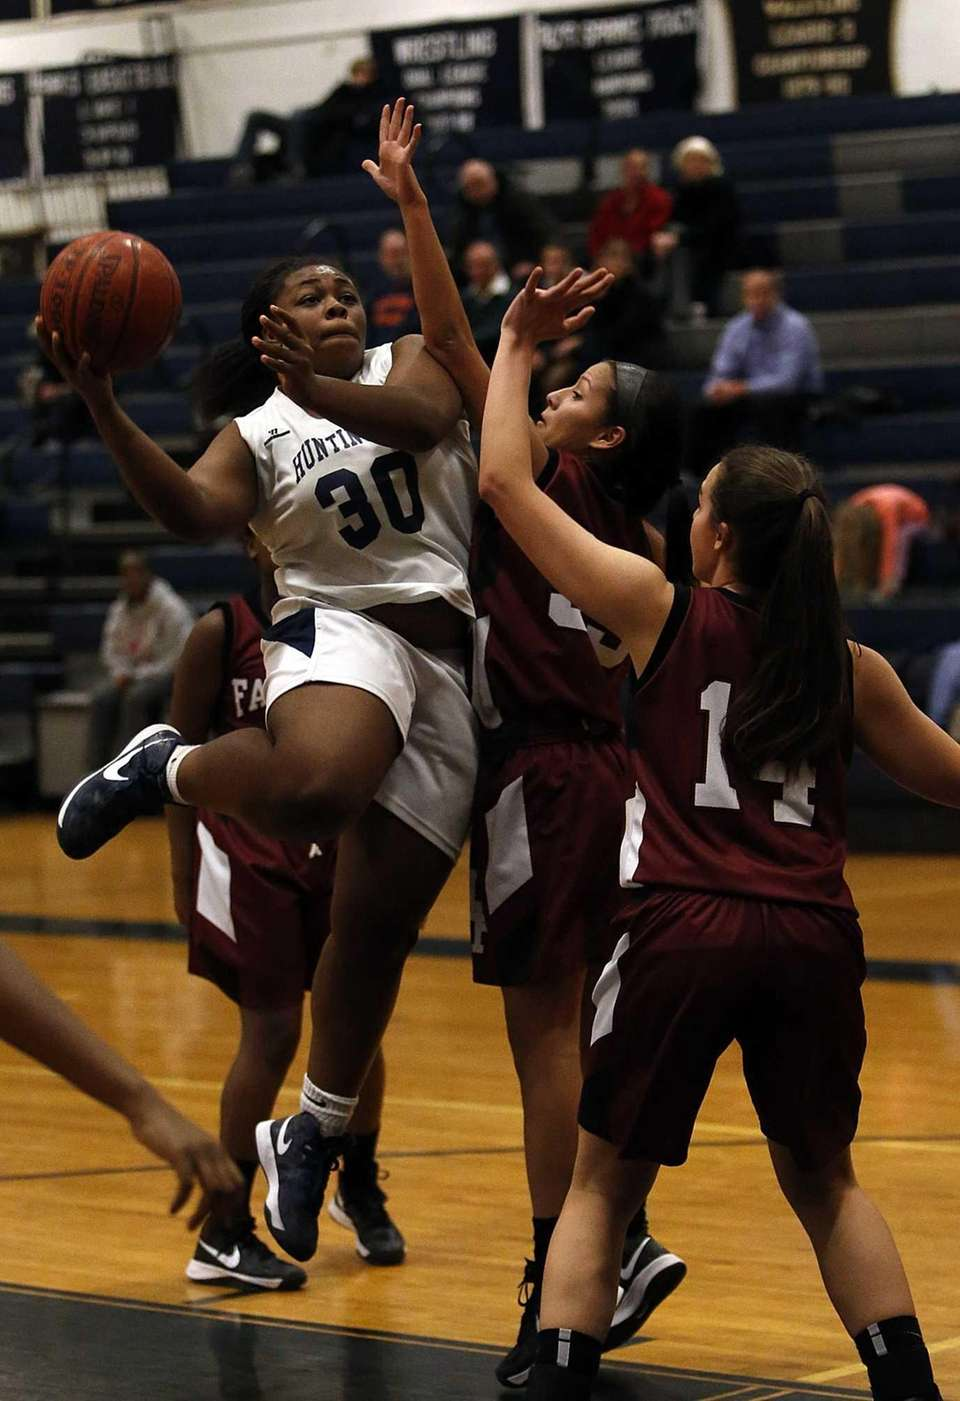 Huntington's Raynisha Witherspoon (30) drives to the hoop